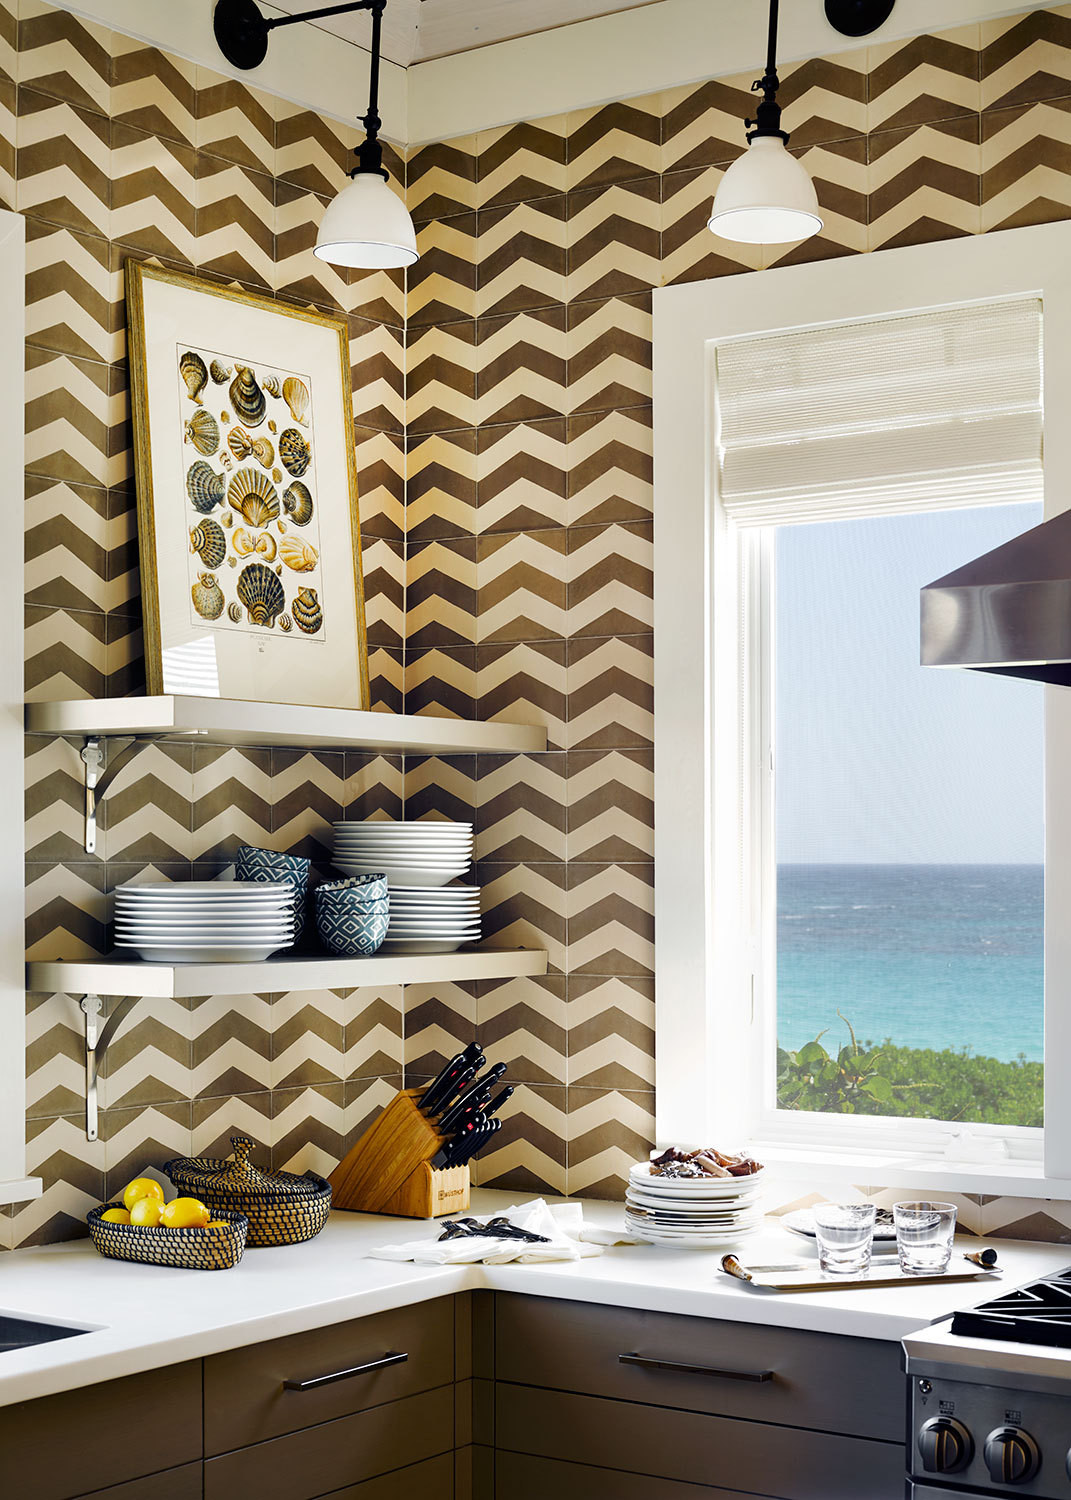 Chevron wall tile sets off the kitchen's open shelving.